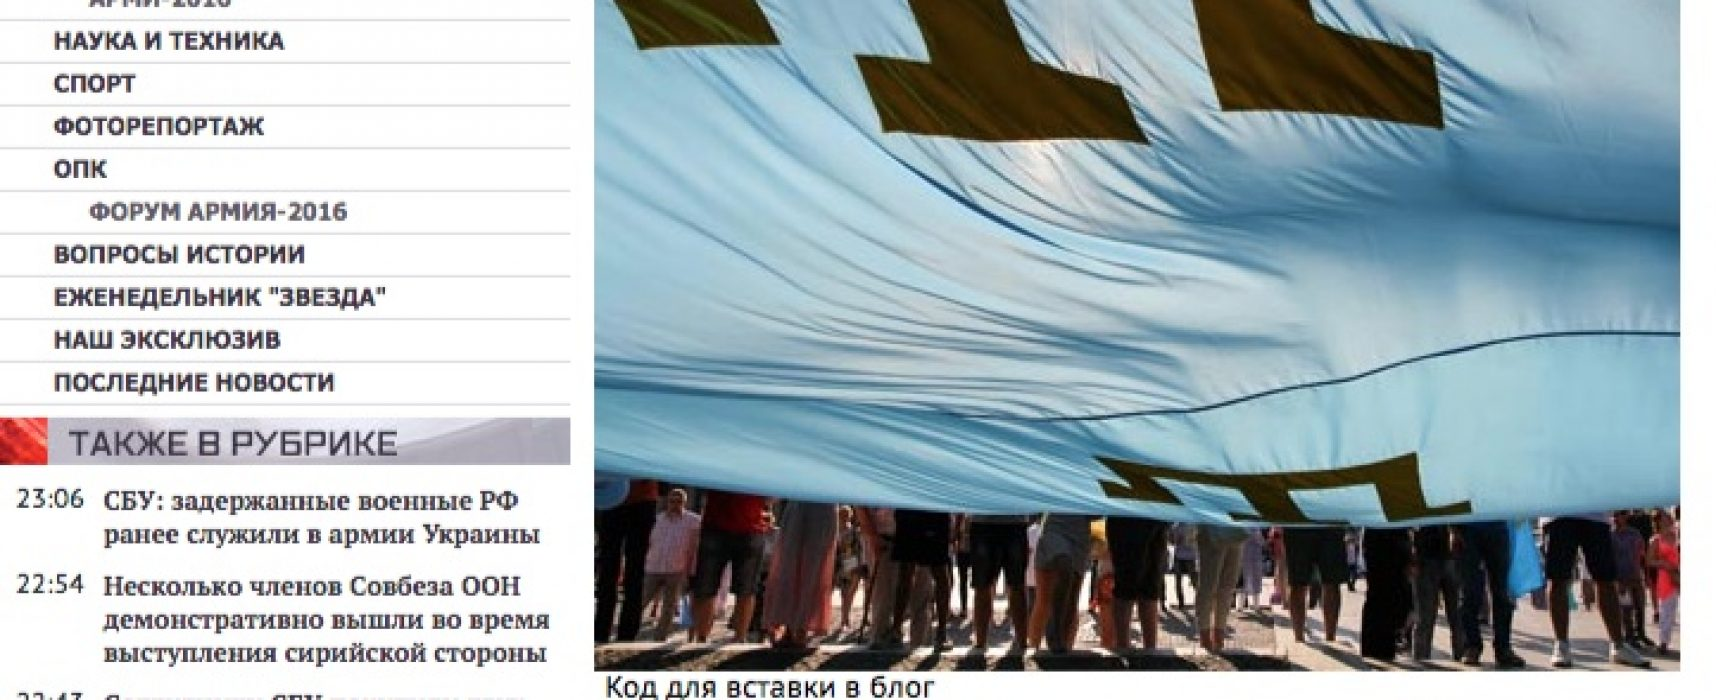 Fake: l'Ucraina sospende il supporto per la Mejlis